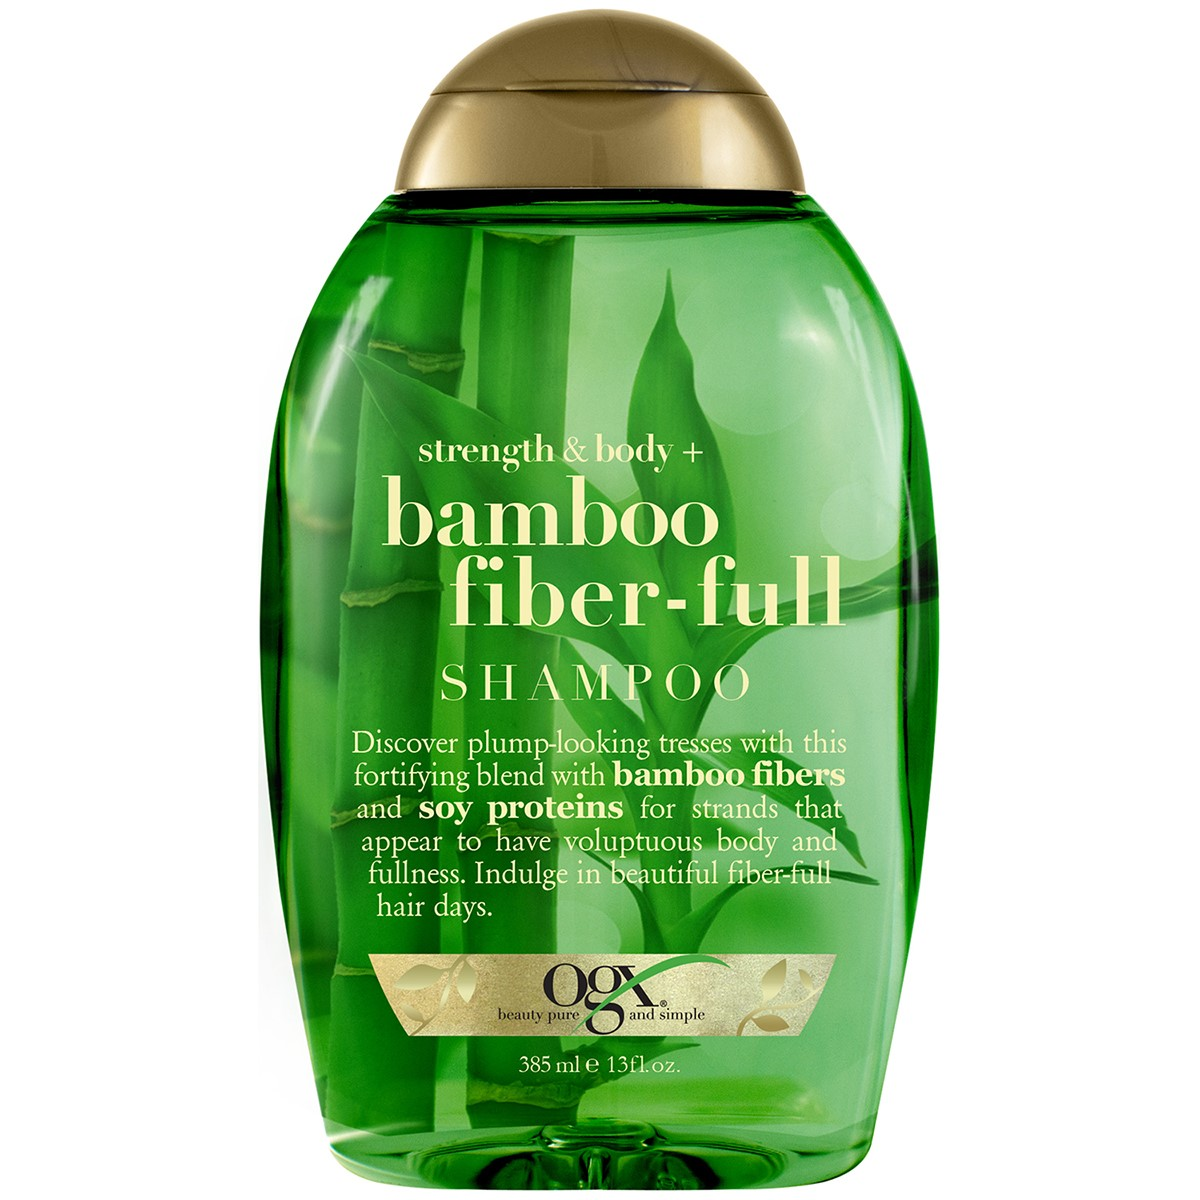 OGX Strength & Body Bamboo Fiber-Full Shampoo, 13 Oz